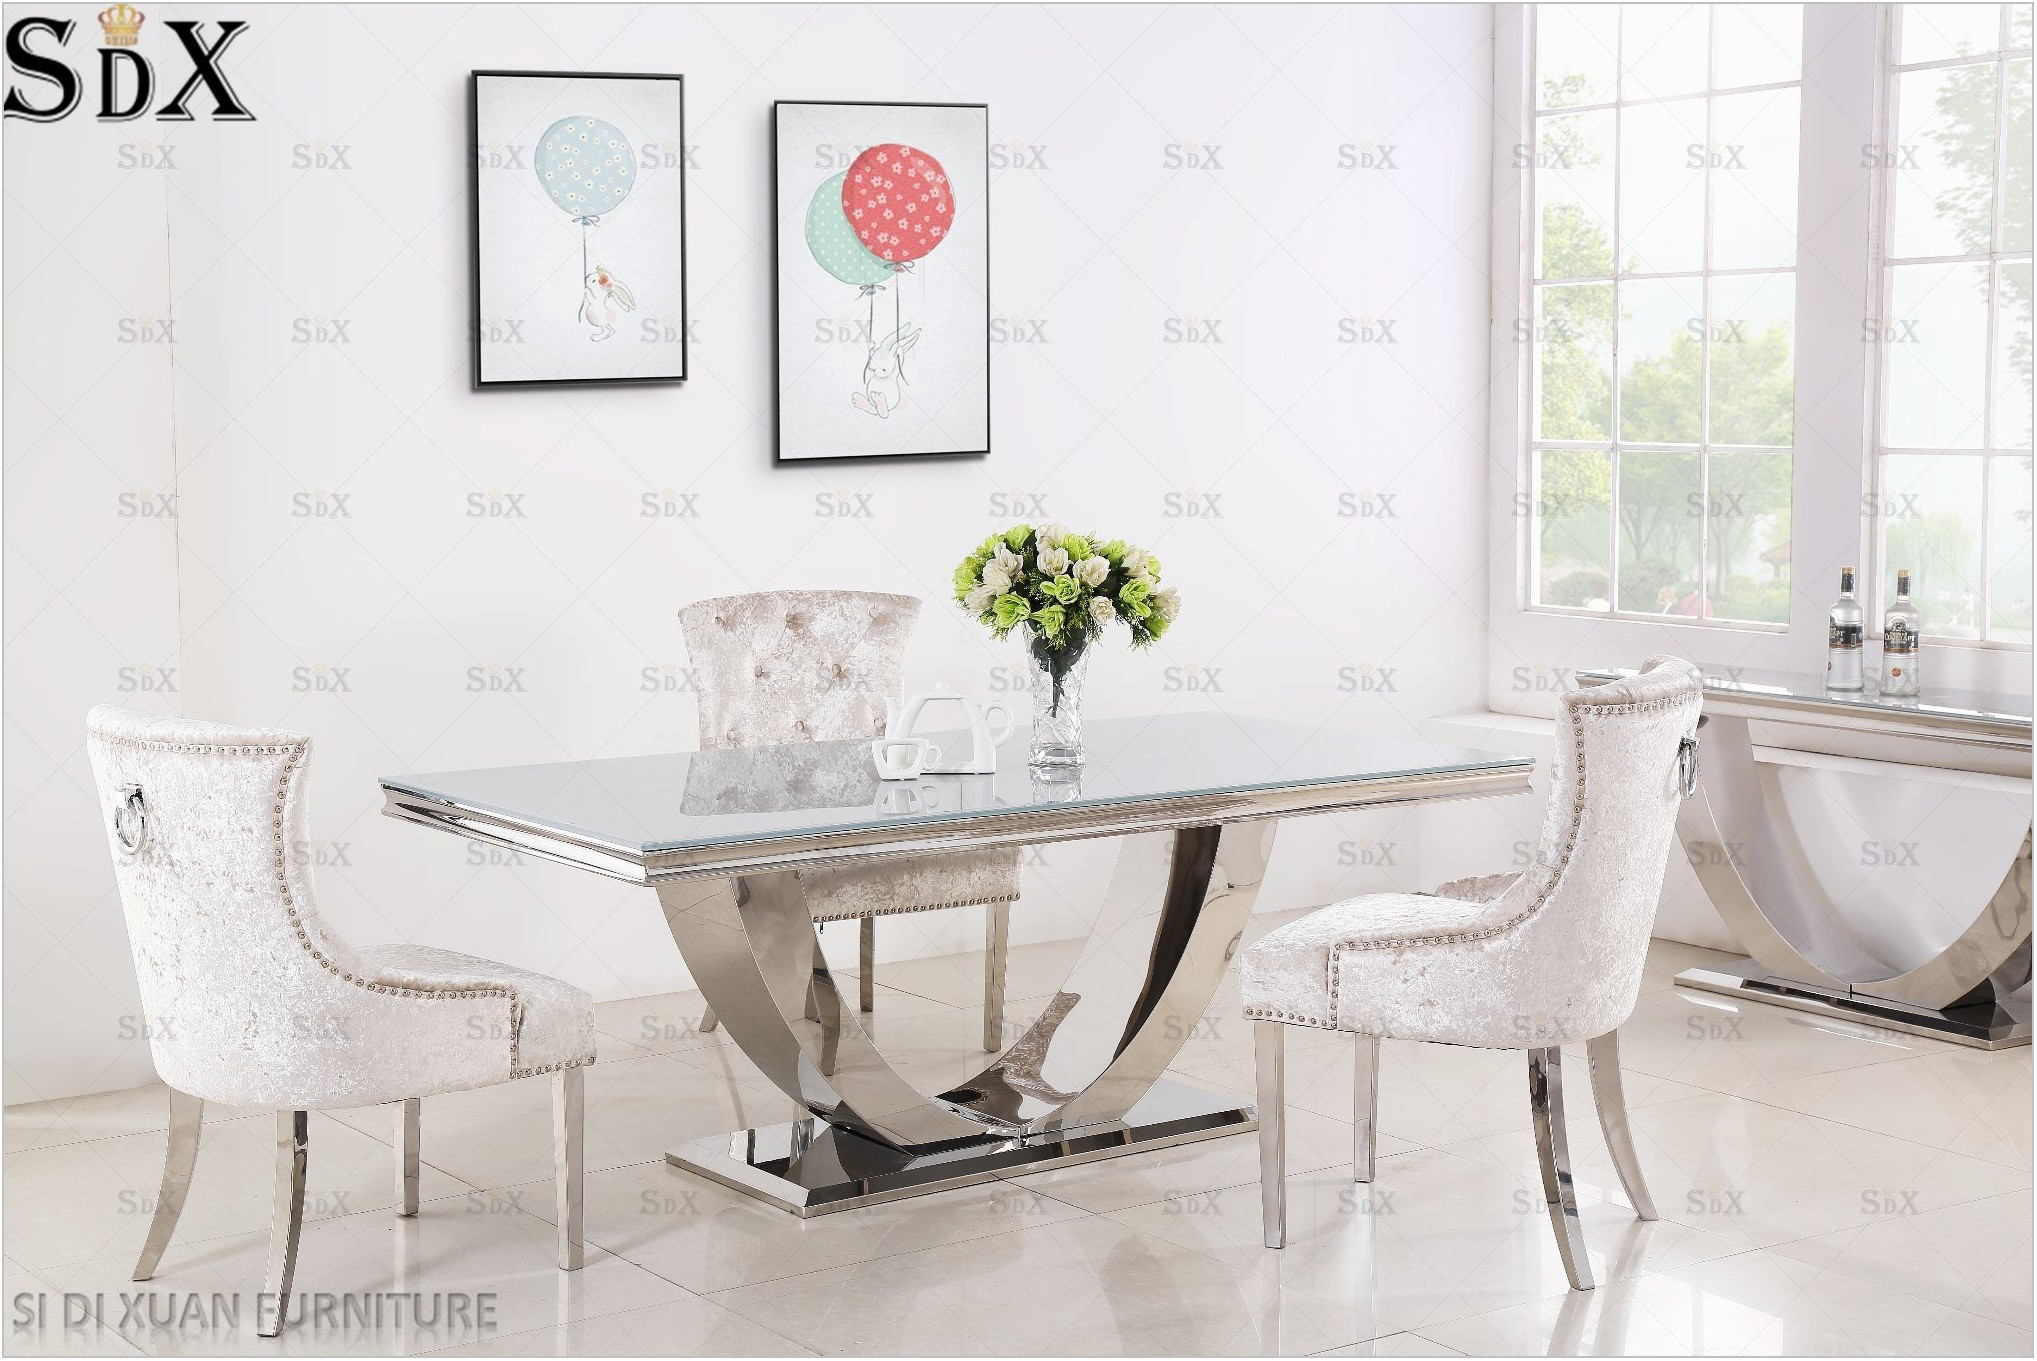 Stainless Steel Top Dining Room Table